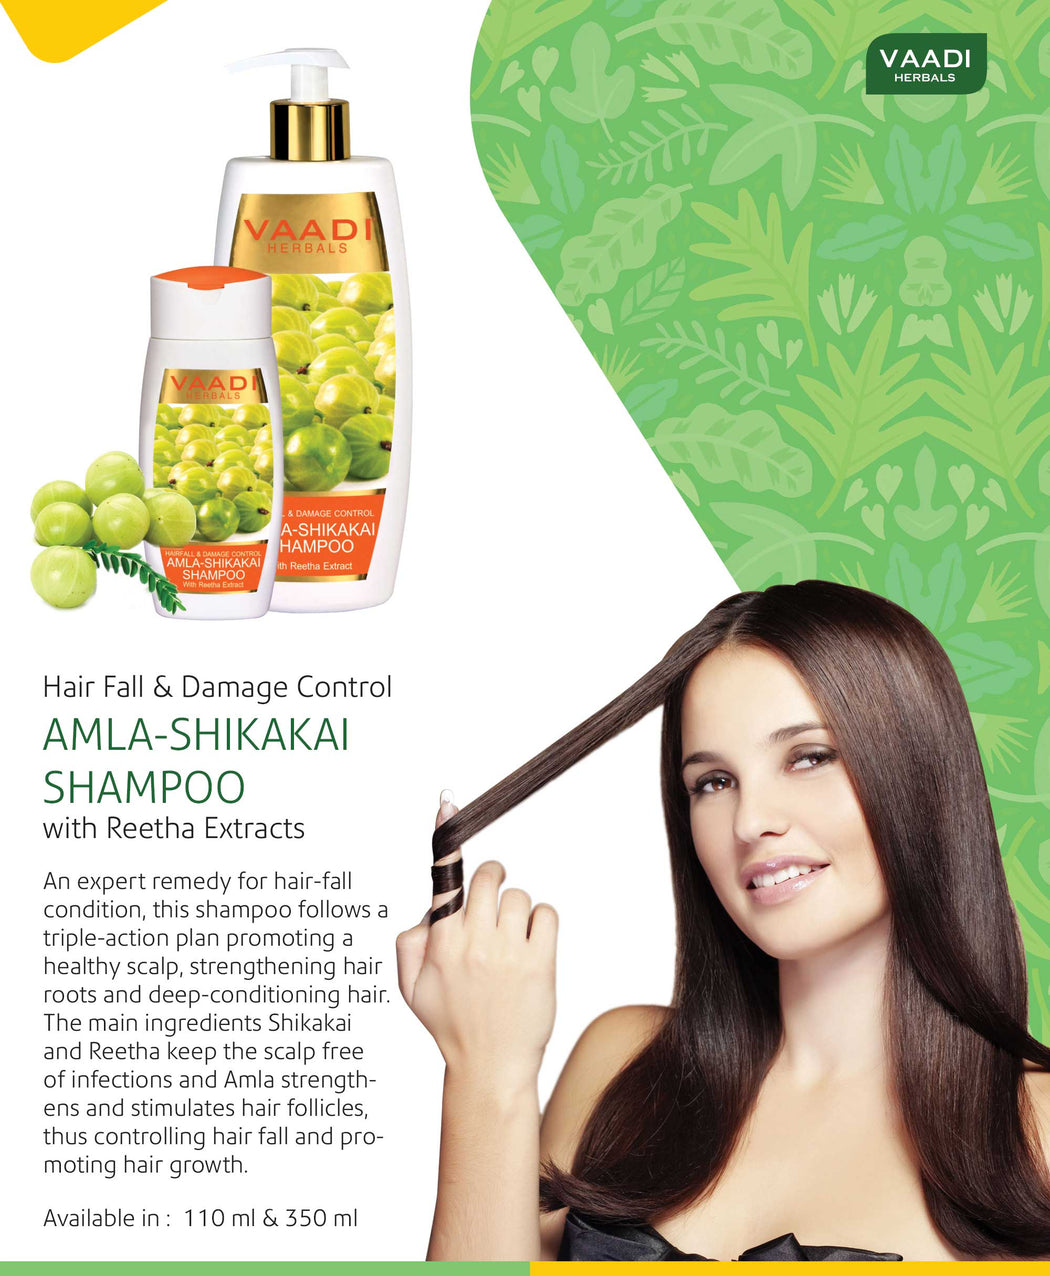 Hairfall & Damage Control Organic Shampoo (Indian Gooseberry Extract) (3 x 110 ml/4 fl oz)